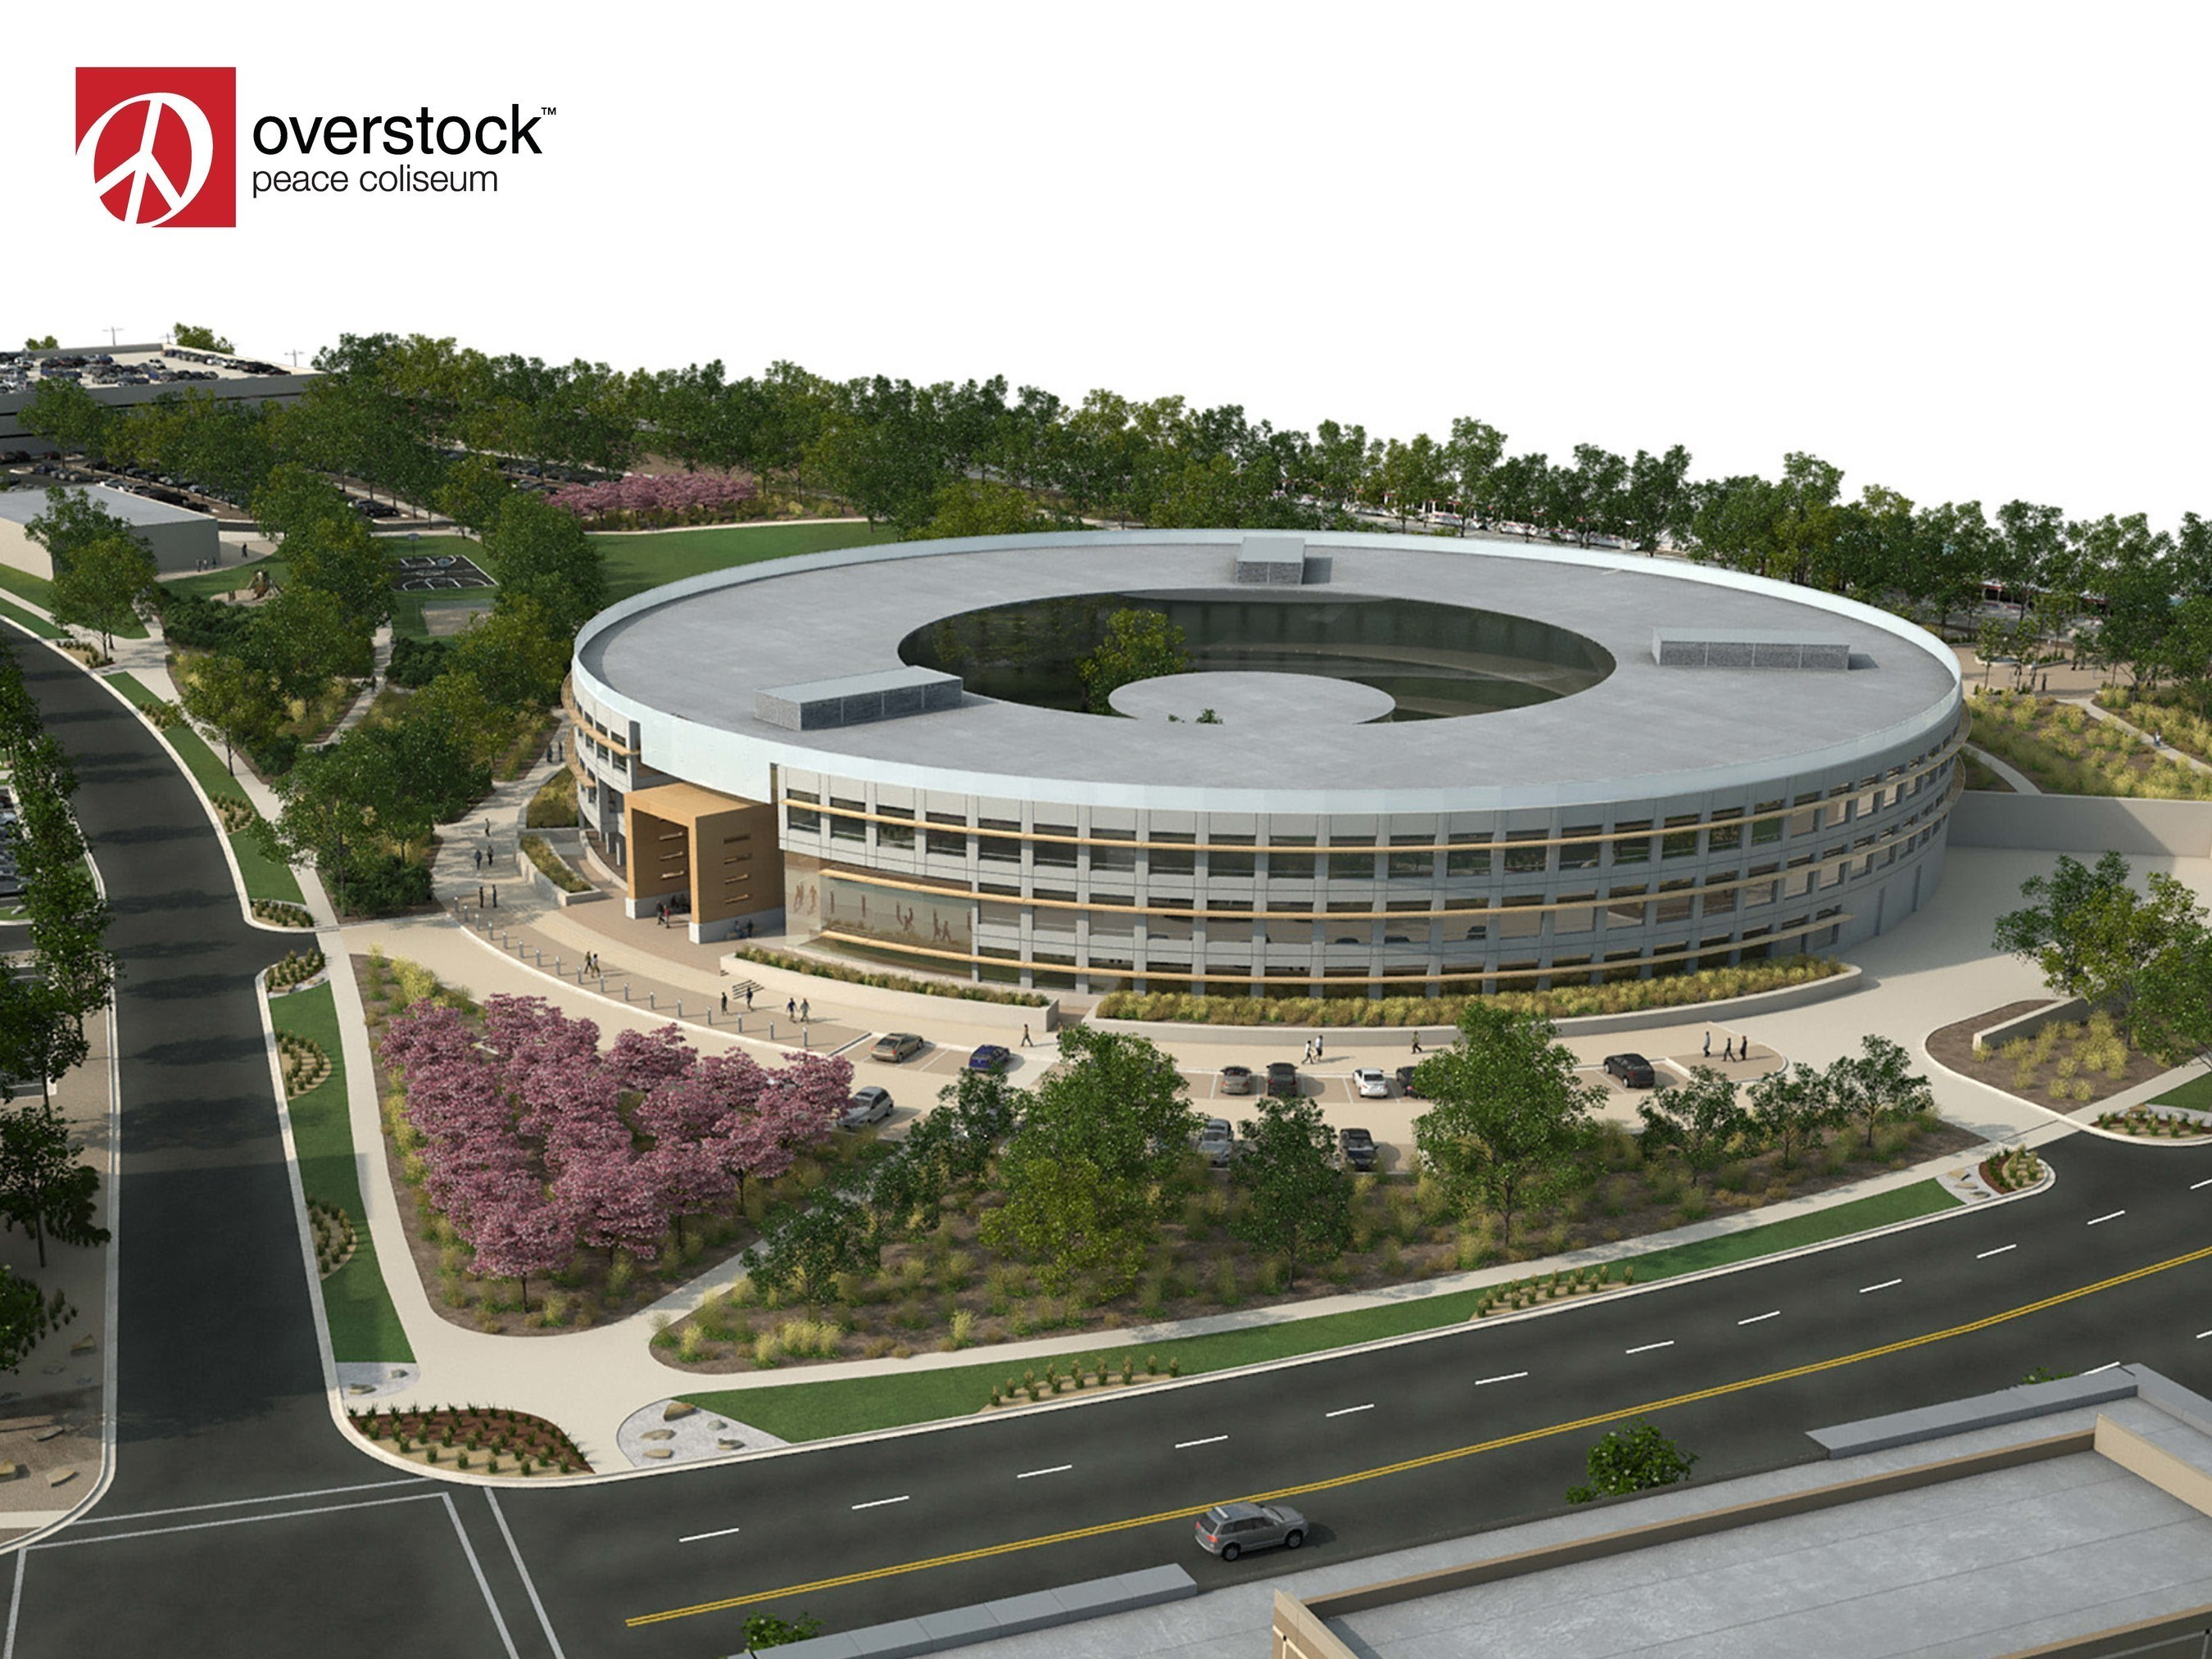 """Aerial View of Overstock.com's New Corporate Campus Referred to as the """"Peace Coliseum."""" (PRNewsFoto/Overstock.com, Inc.)"""